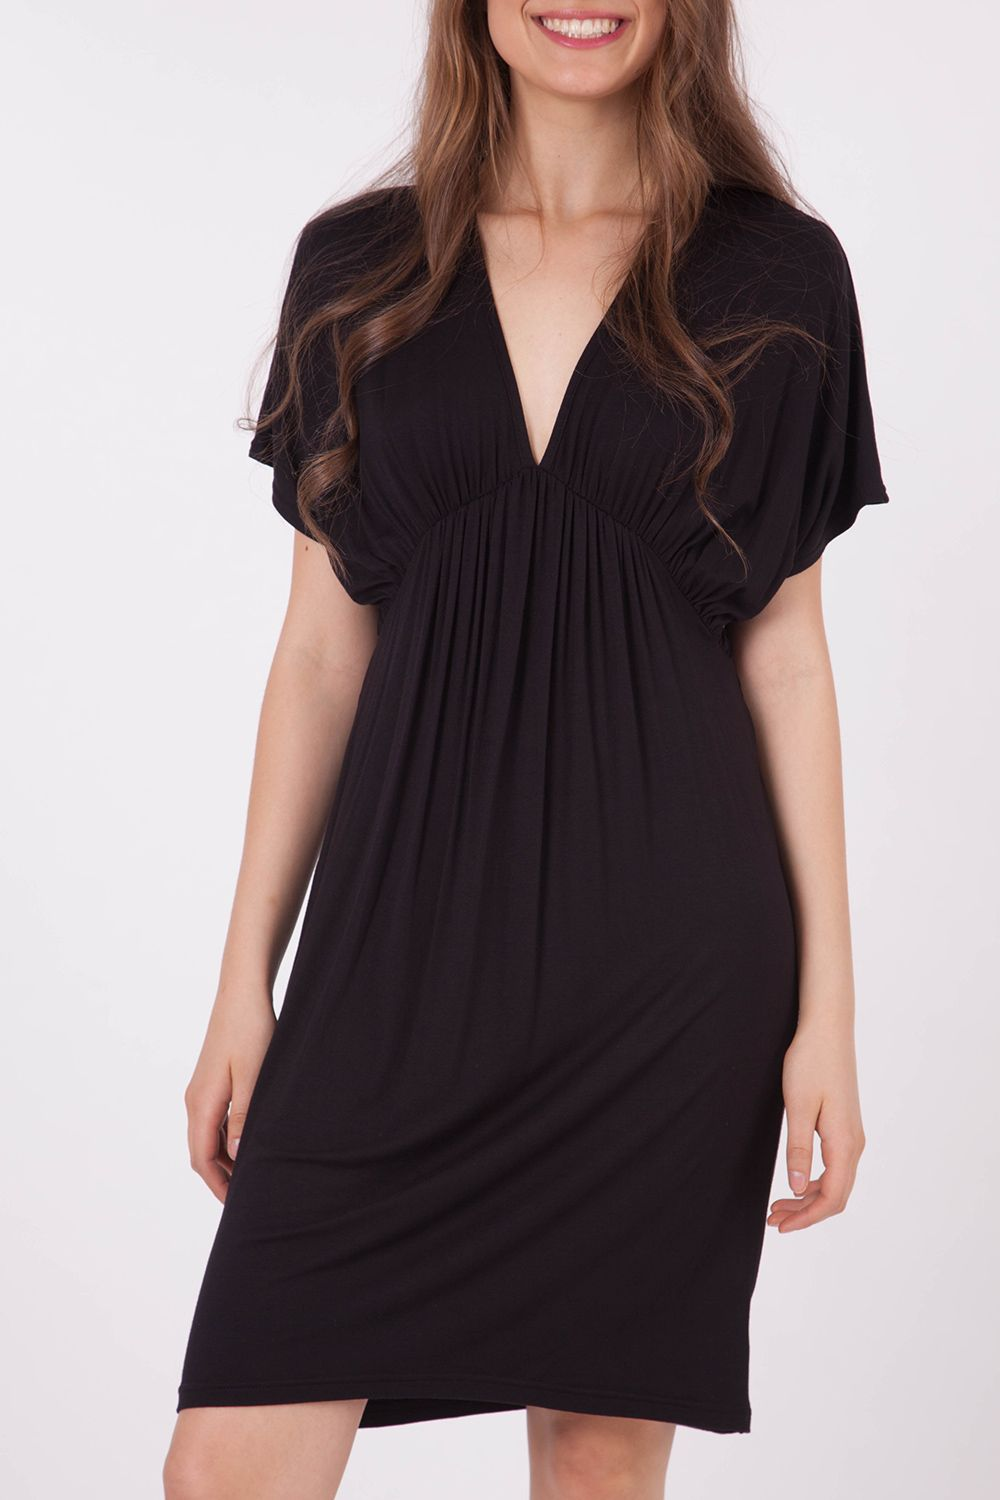 Gathered Bust Loose Tee Dress Great For Hiding Arms V Neck Flatters A